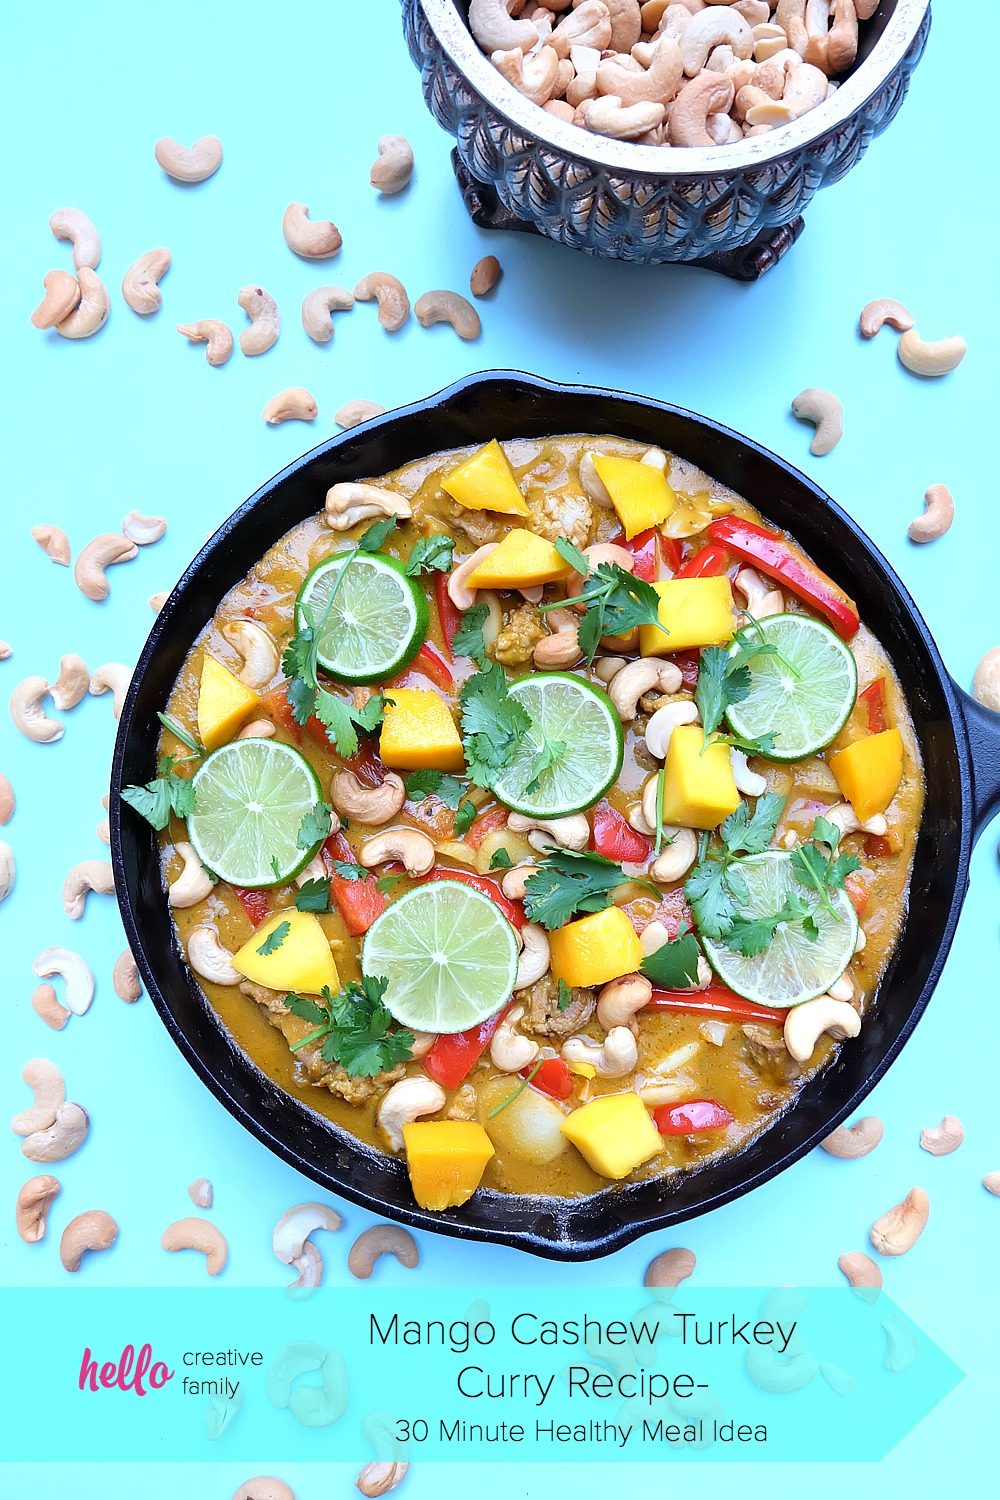 Feed your family a delicious, fresh meal packed with protein that will be on the table in 30 minutes or less! This healthy Mango Cashew Turkey Curry Recipe is sure to become a favorite! Make in a cast iron skillet or your favorite frying pan! Bonus- It's a one pot meal! #TryTurkey